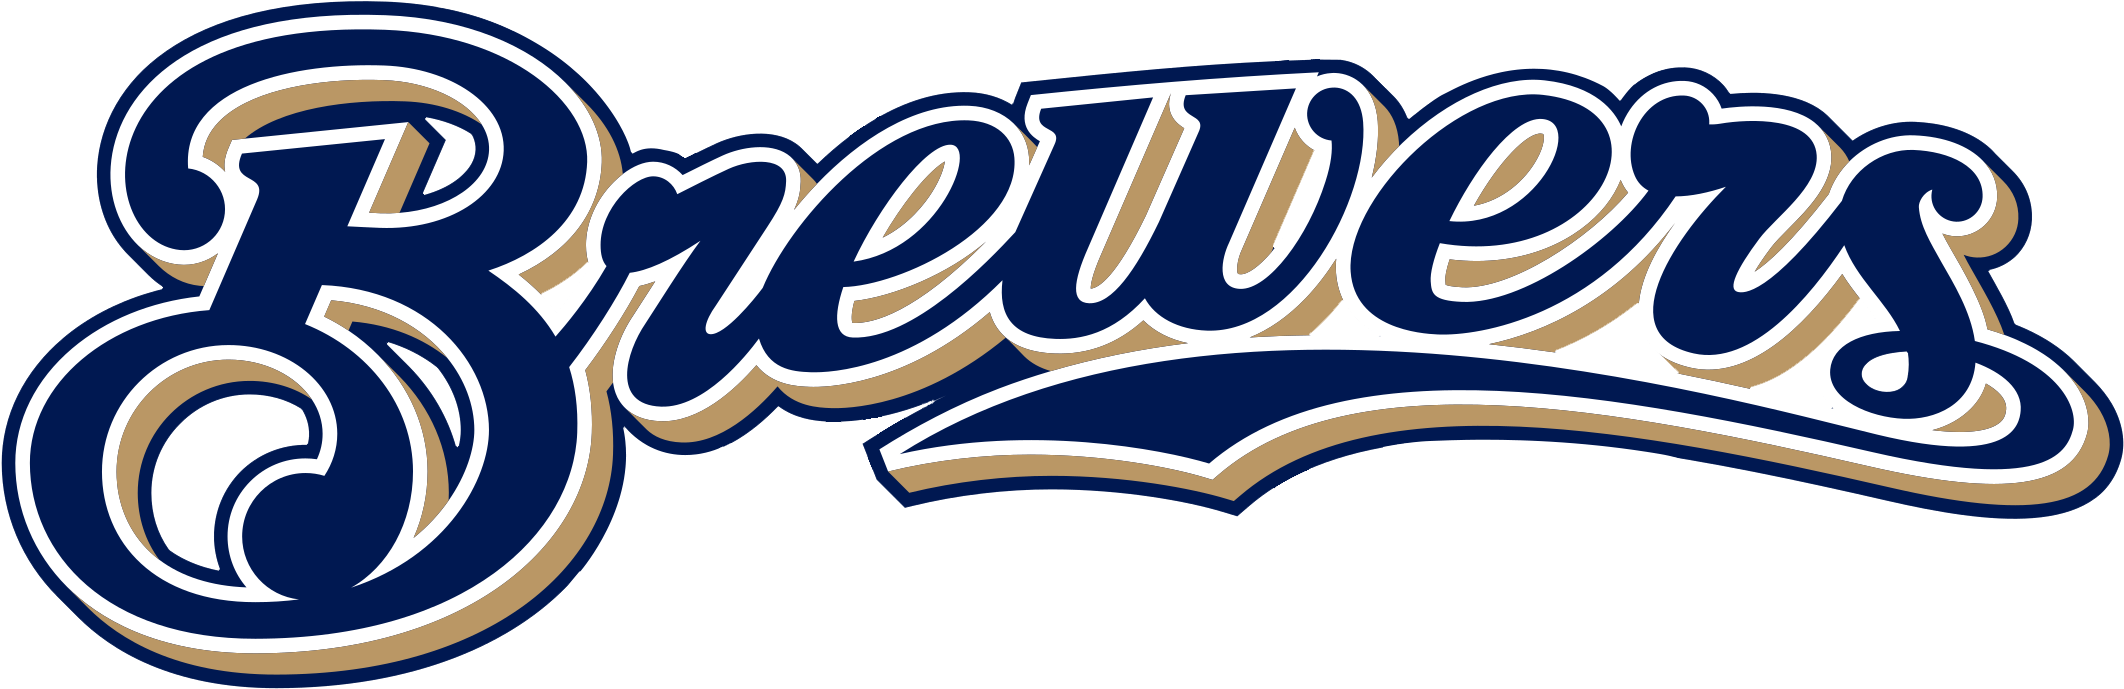 Milwaukee Brewers Logo Png Transparent Milwaukee Brewers.